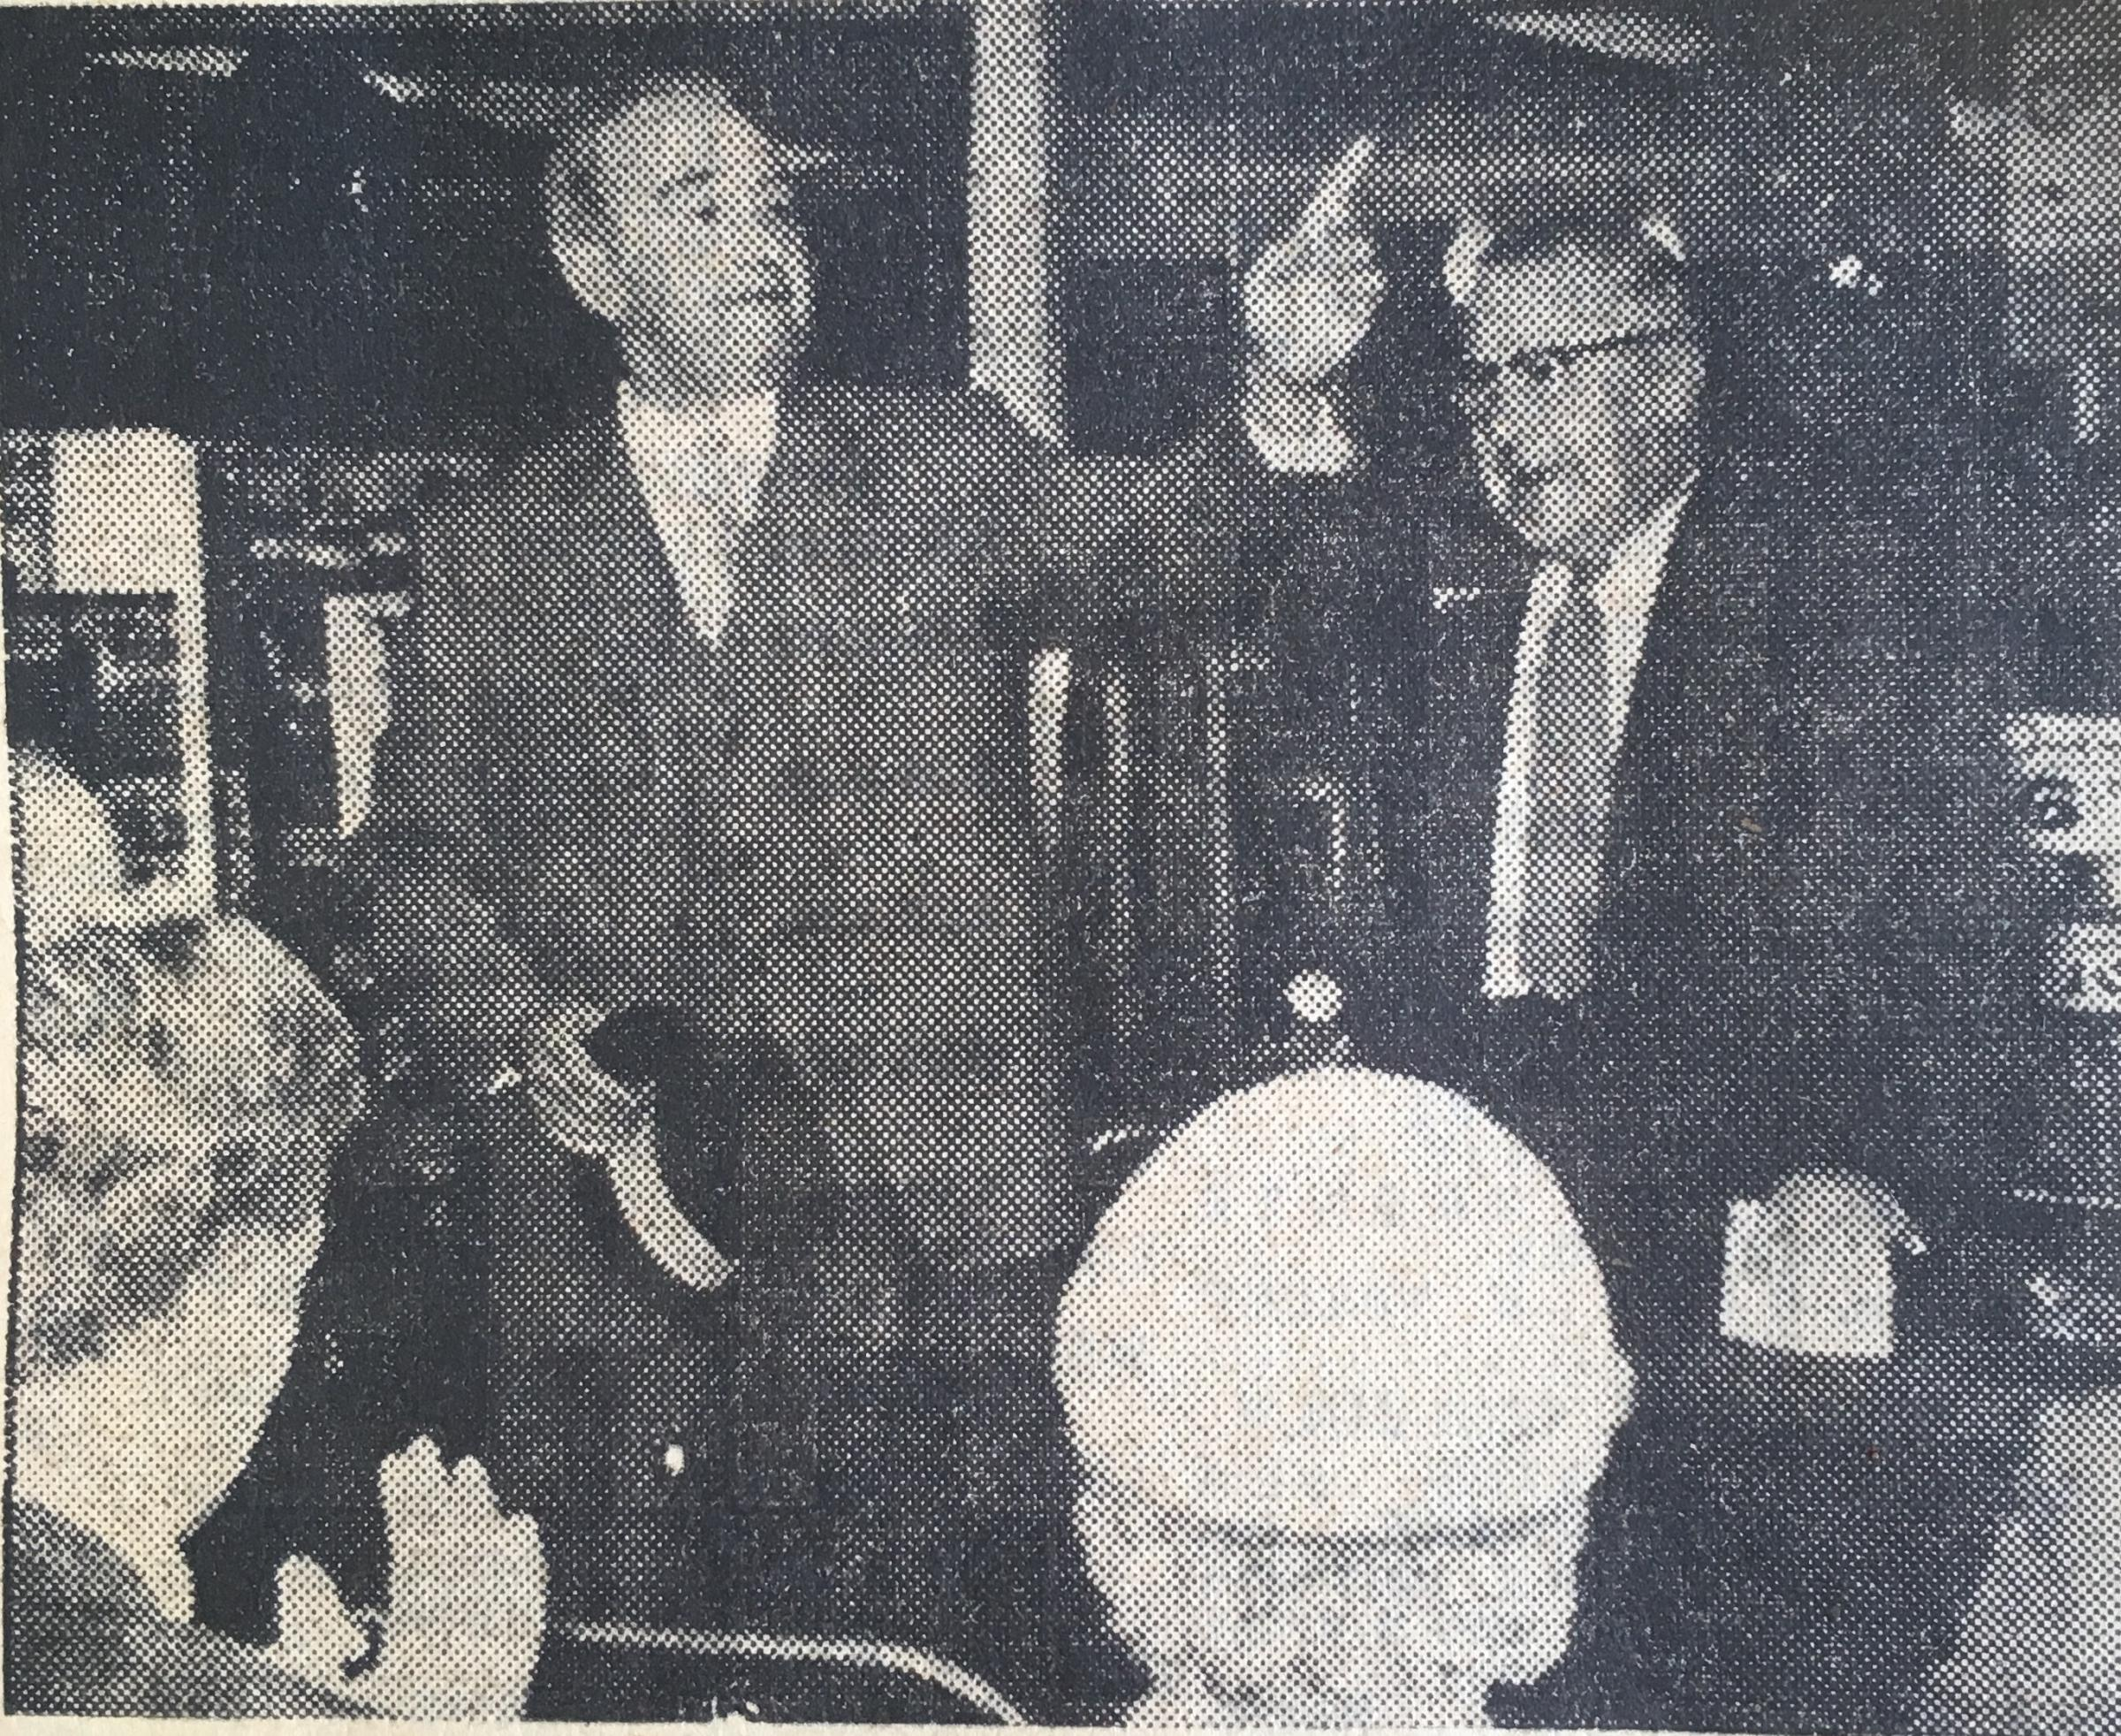 At the opening of Blackburn's new supermarket was Mr B.T. Parry, the general manager and Mr J. Farish, president, who officially opened the market.